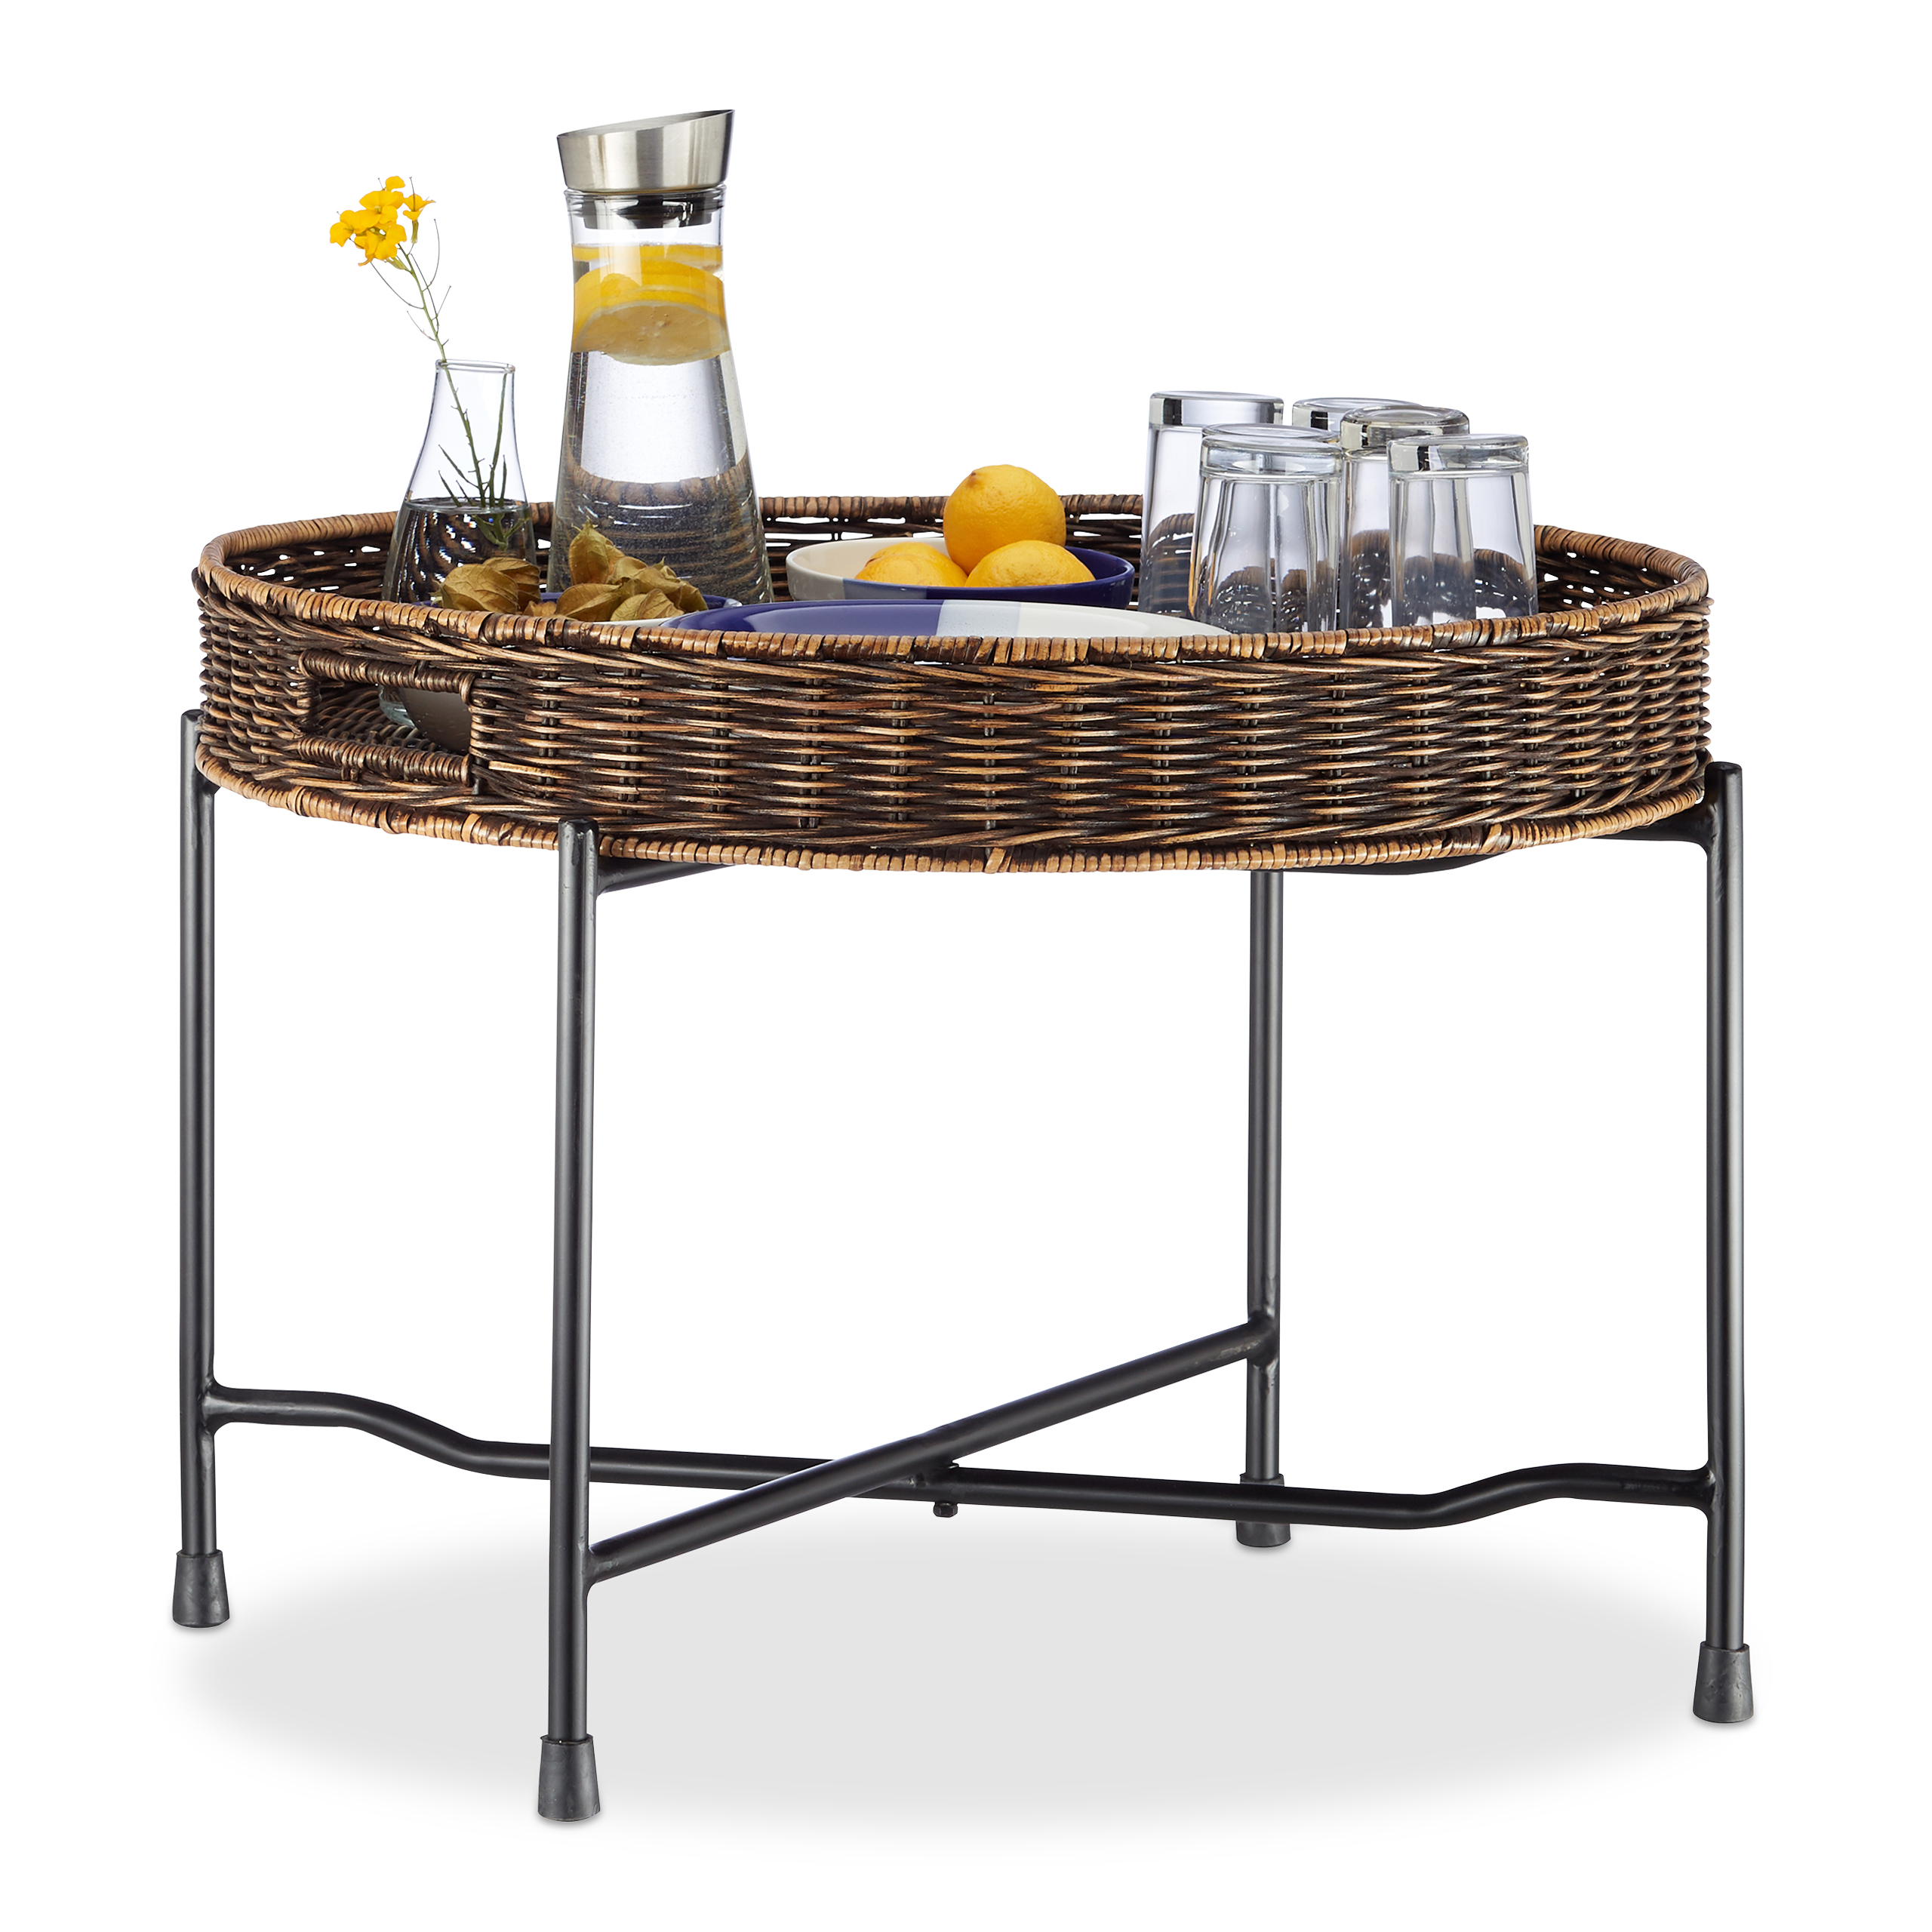 Folding Rattan Serving Table With Basket Tray, Coffee